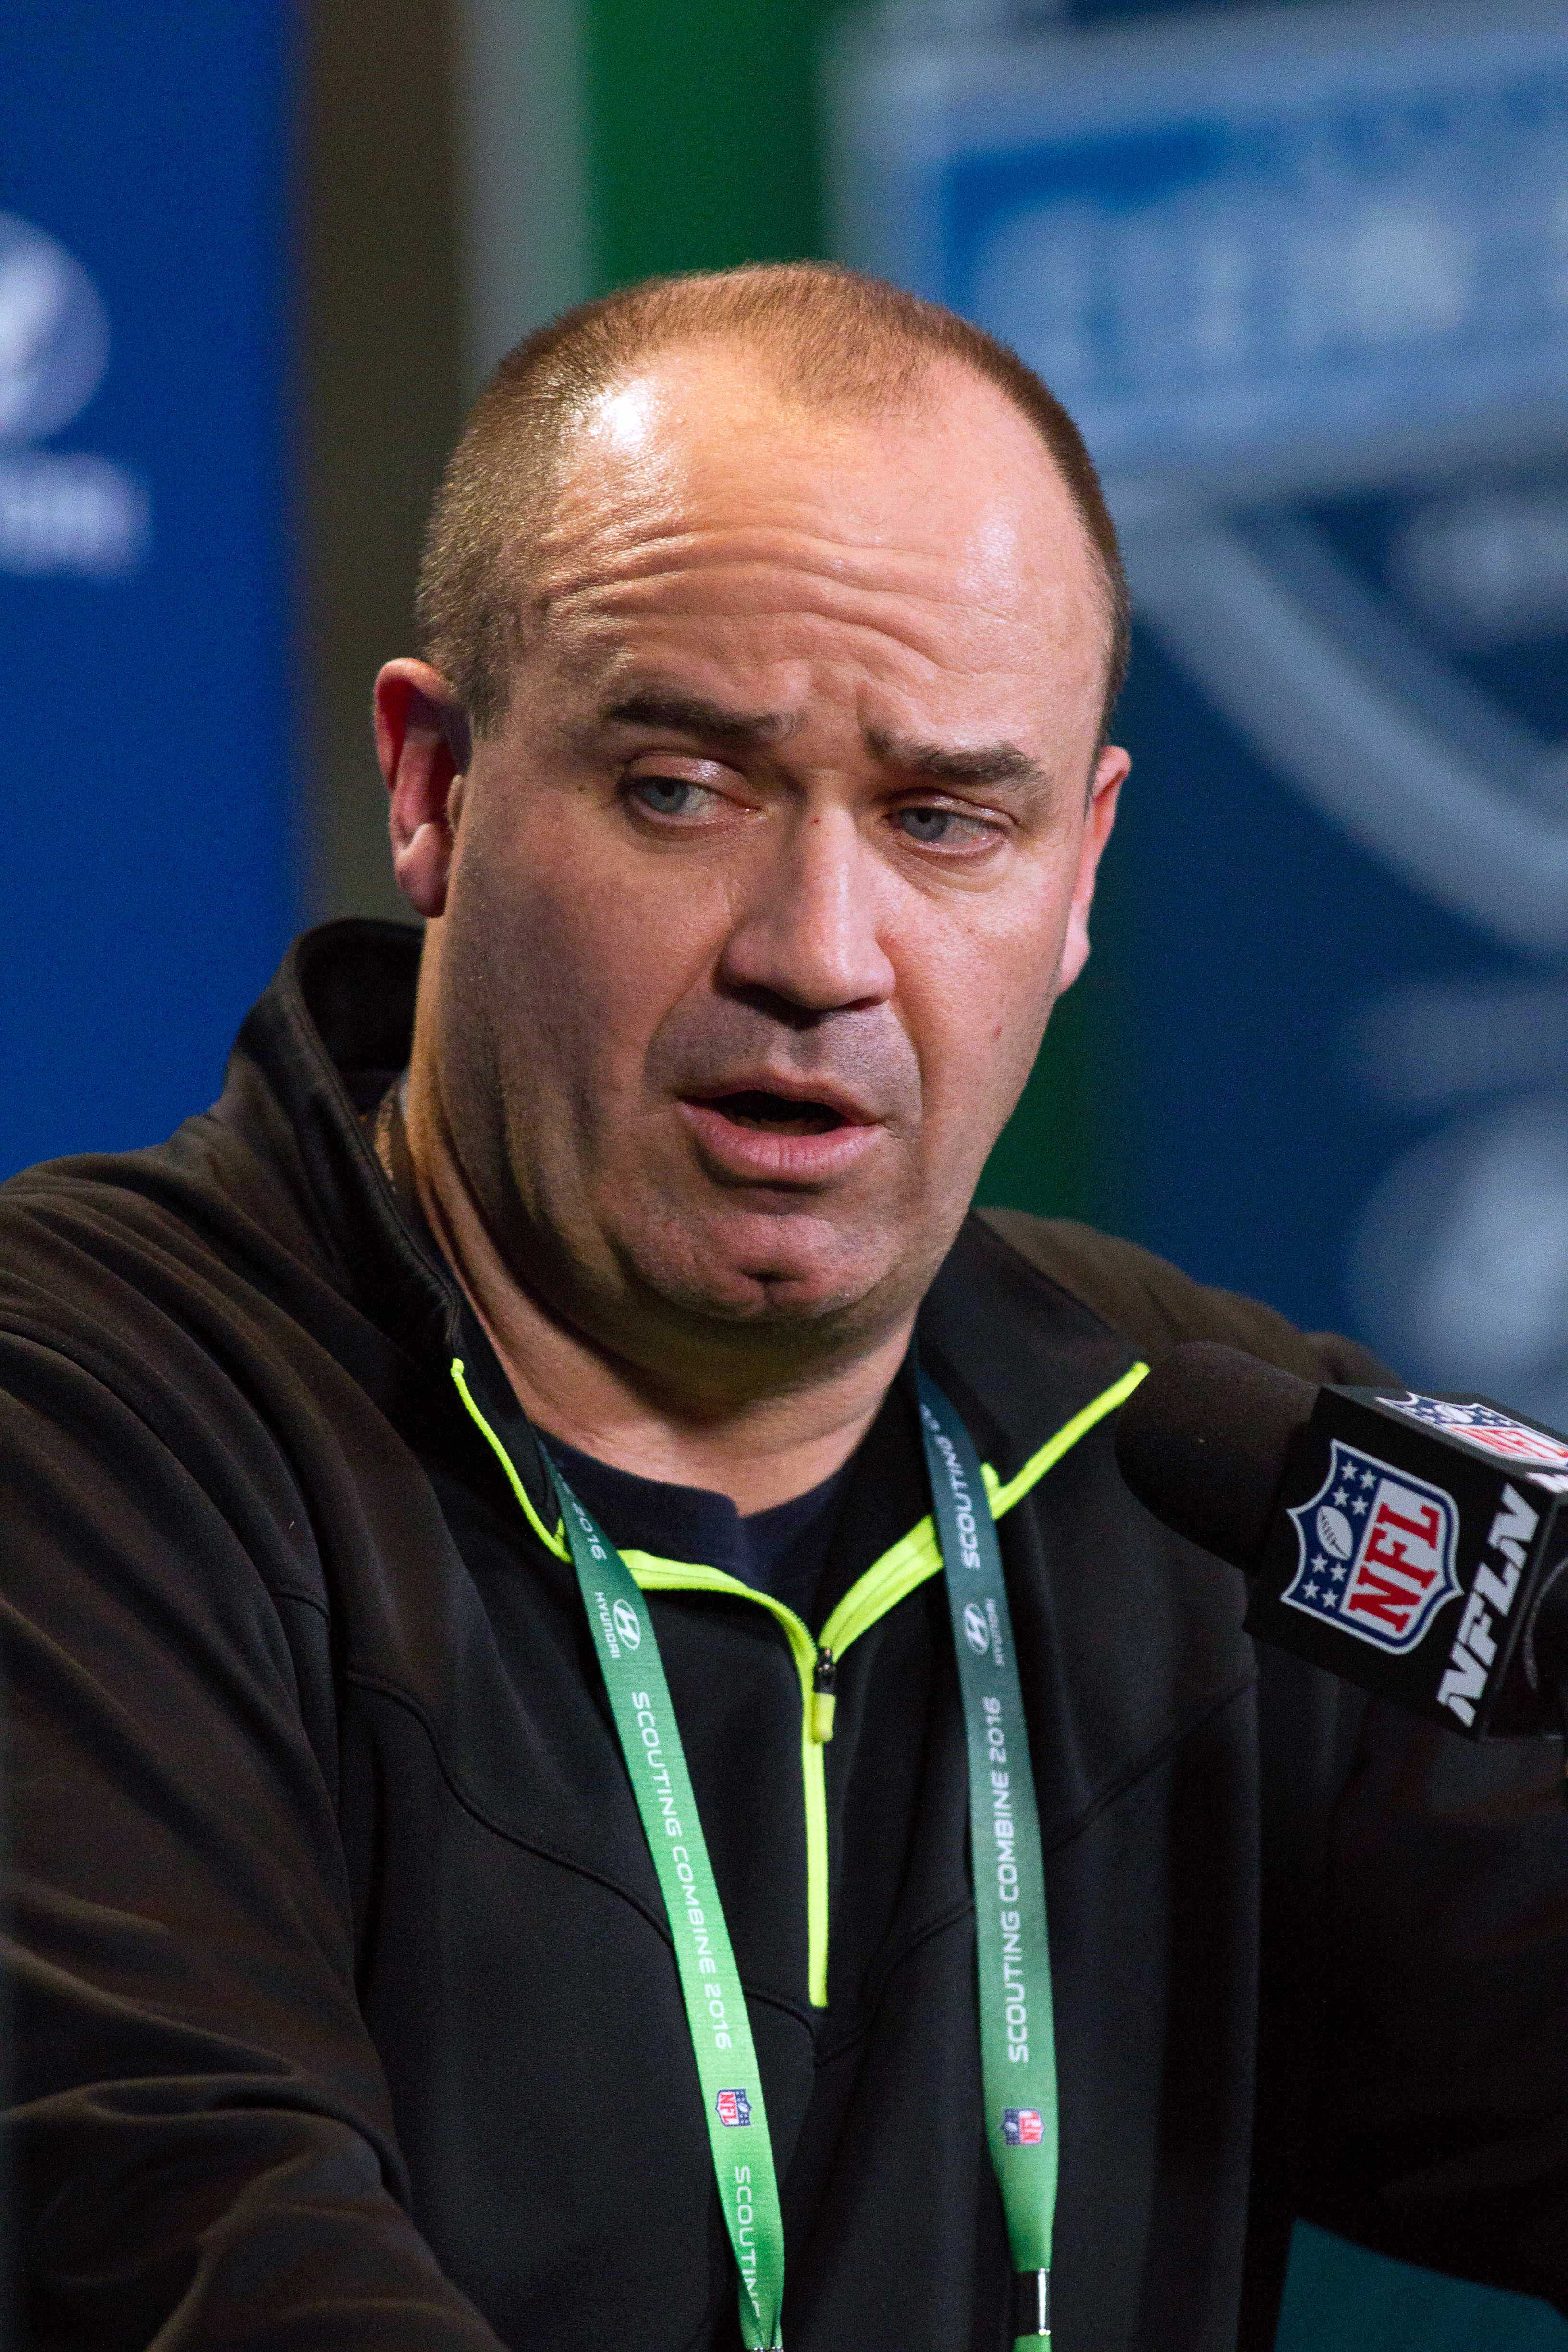 Bill O'Brien is not amused by several definitions used in this glossary.